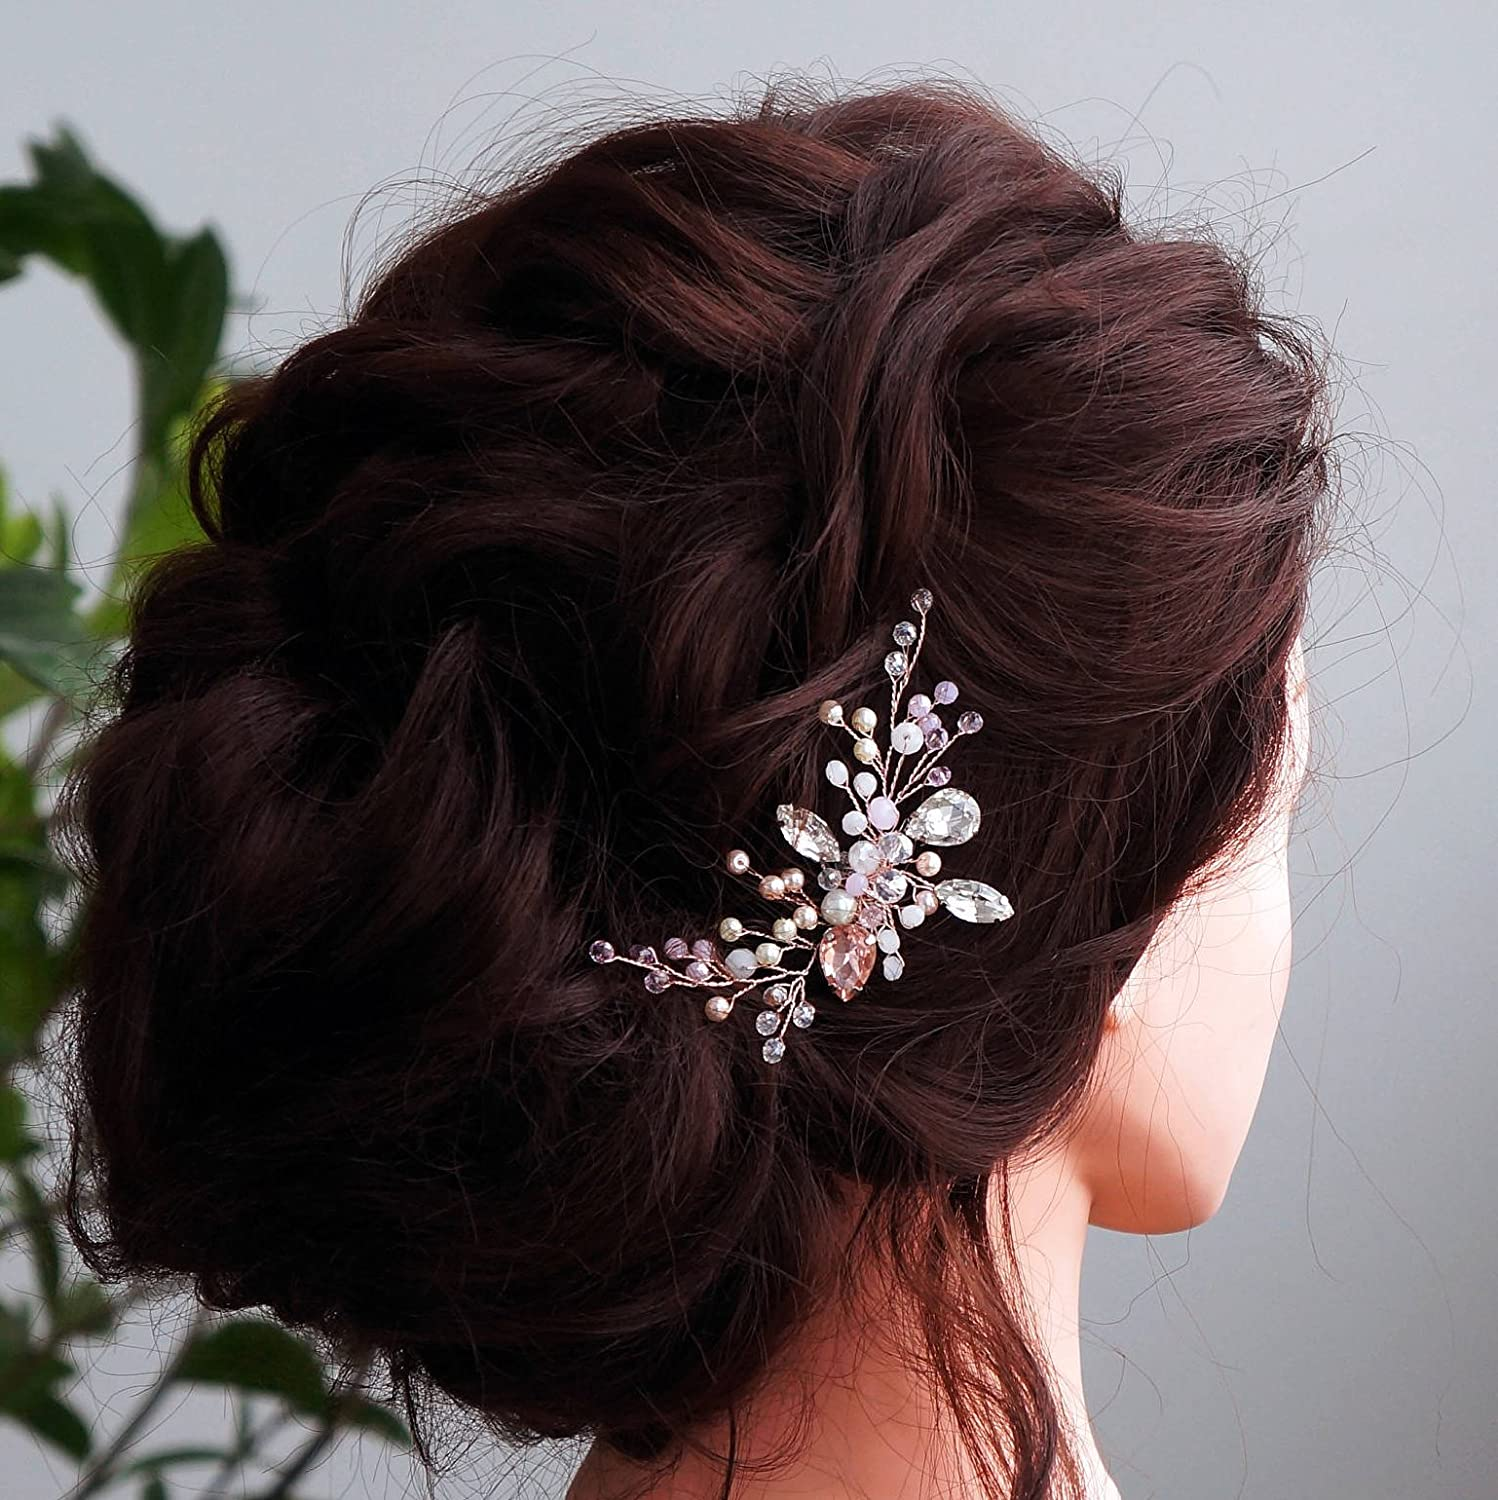 Kercisbeauty Wedding Bridal Bridesmaids Flower Girl Pink Crystal Beads and Rhinestone Tiny Cute Hair Comb Slides Headpiece Long Curly Bun Hair Accessories for Prom(Rose Gold)